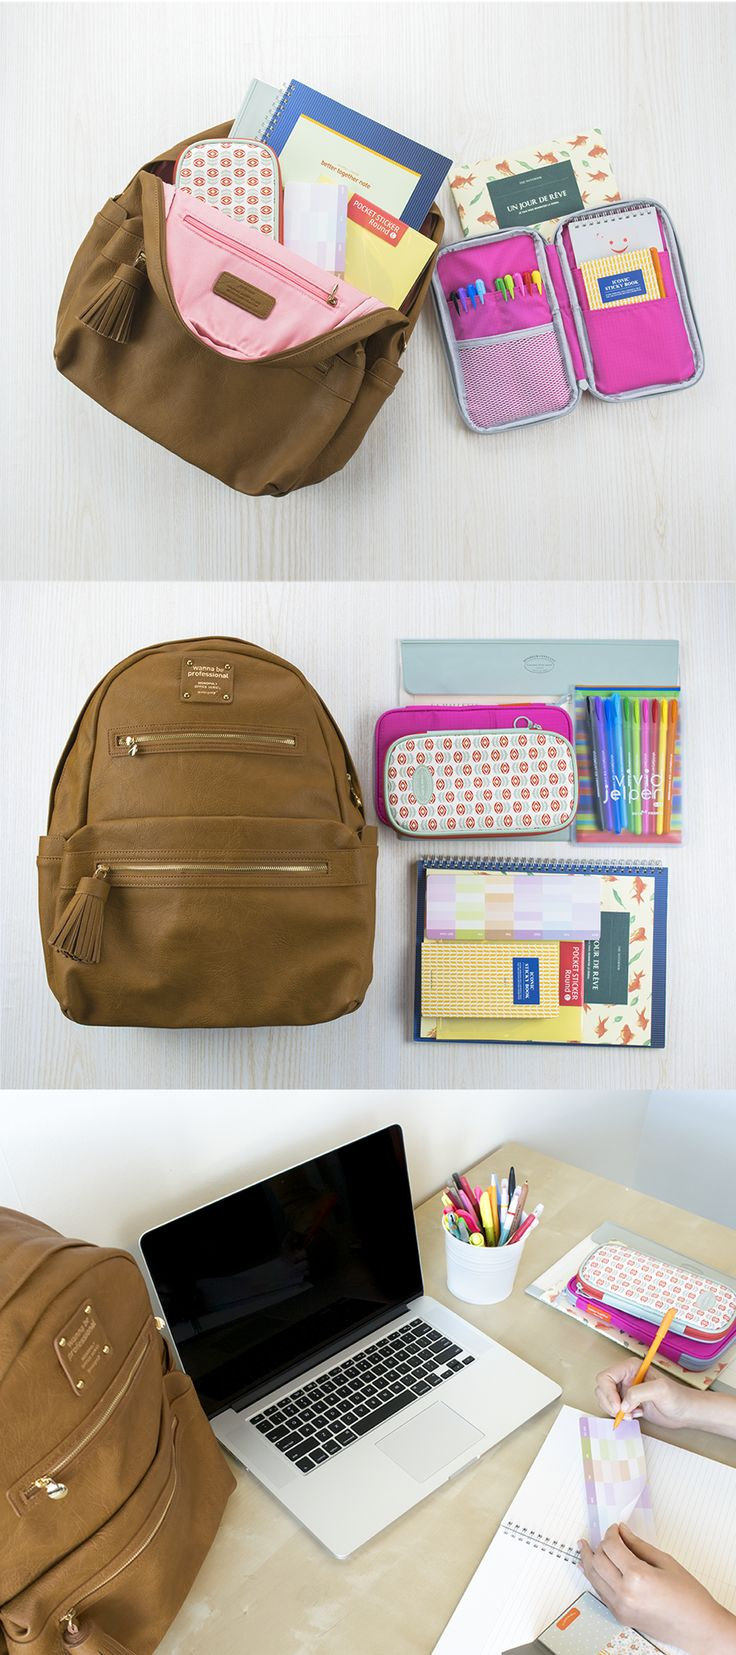 Attention all students! Don't scramble for school supplies any longer. Everything you need is right here in our adorable School Collection. It includes a backpack, pen case, pouch, numerous notebooks, stationeries and a pen set. Stand out with the unique and exclusive School Collection.